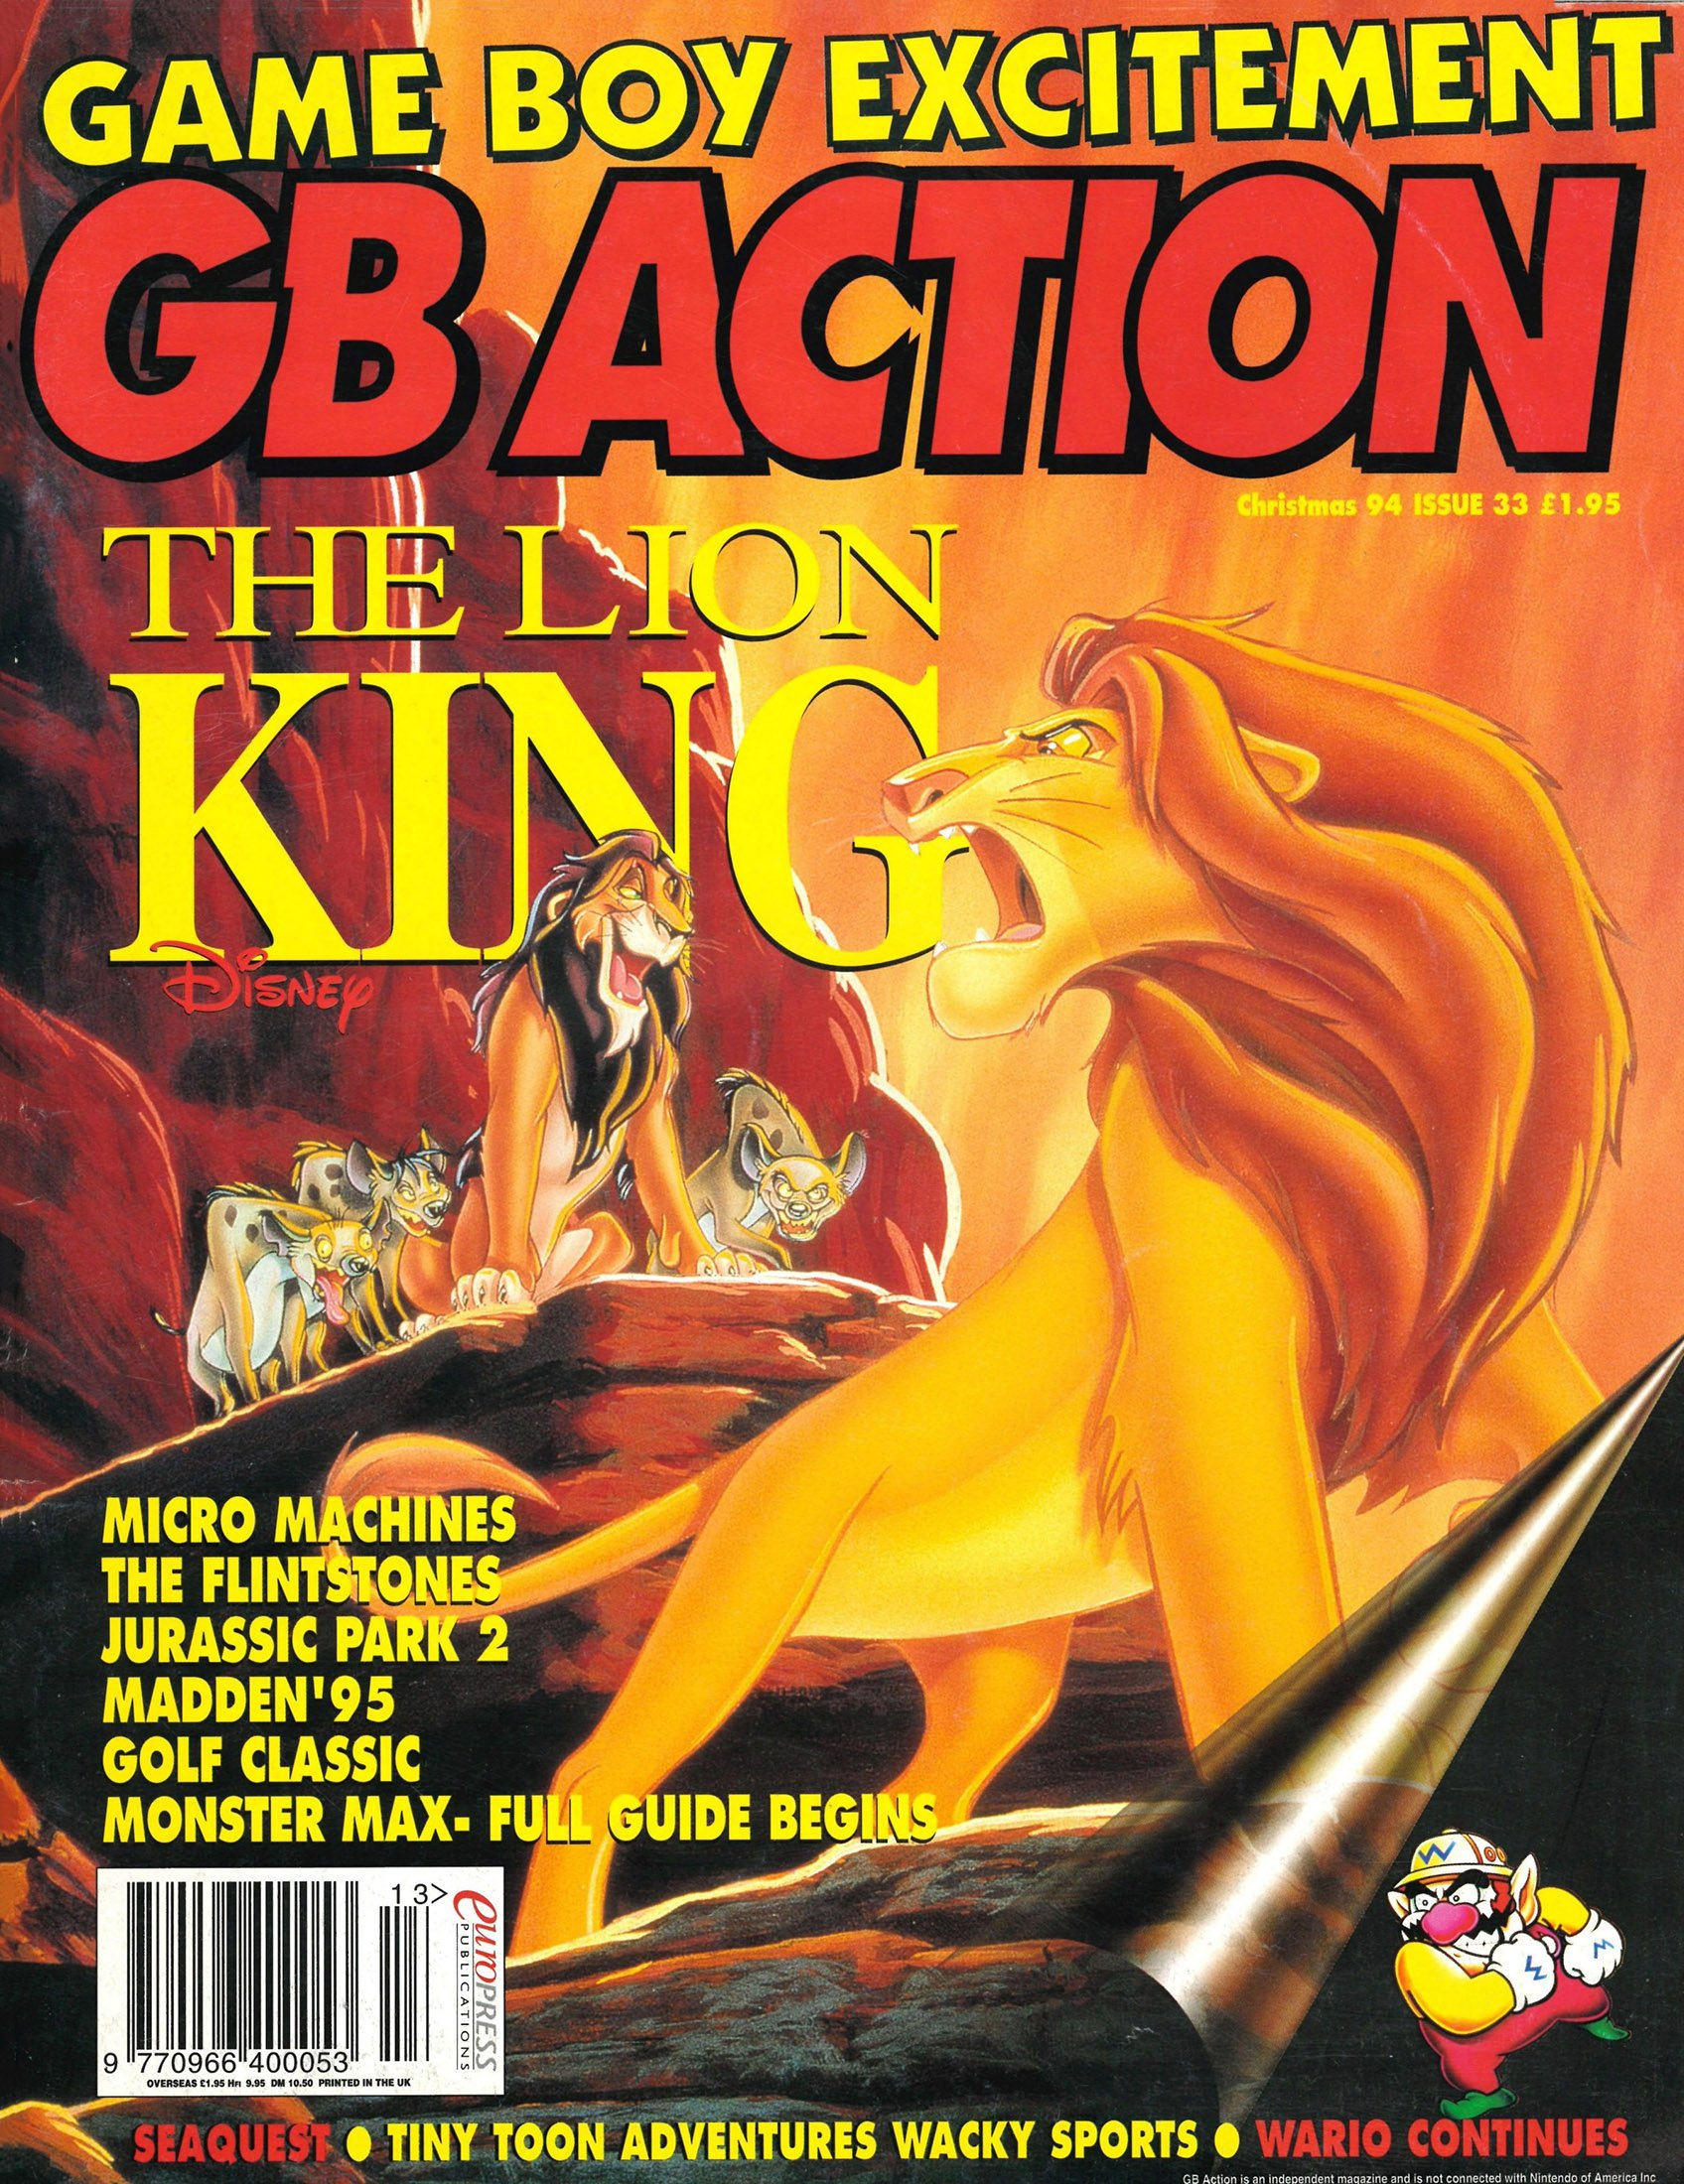 GB Action Issue 33 (Christmas 1994)